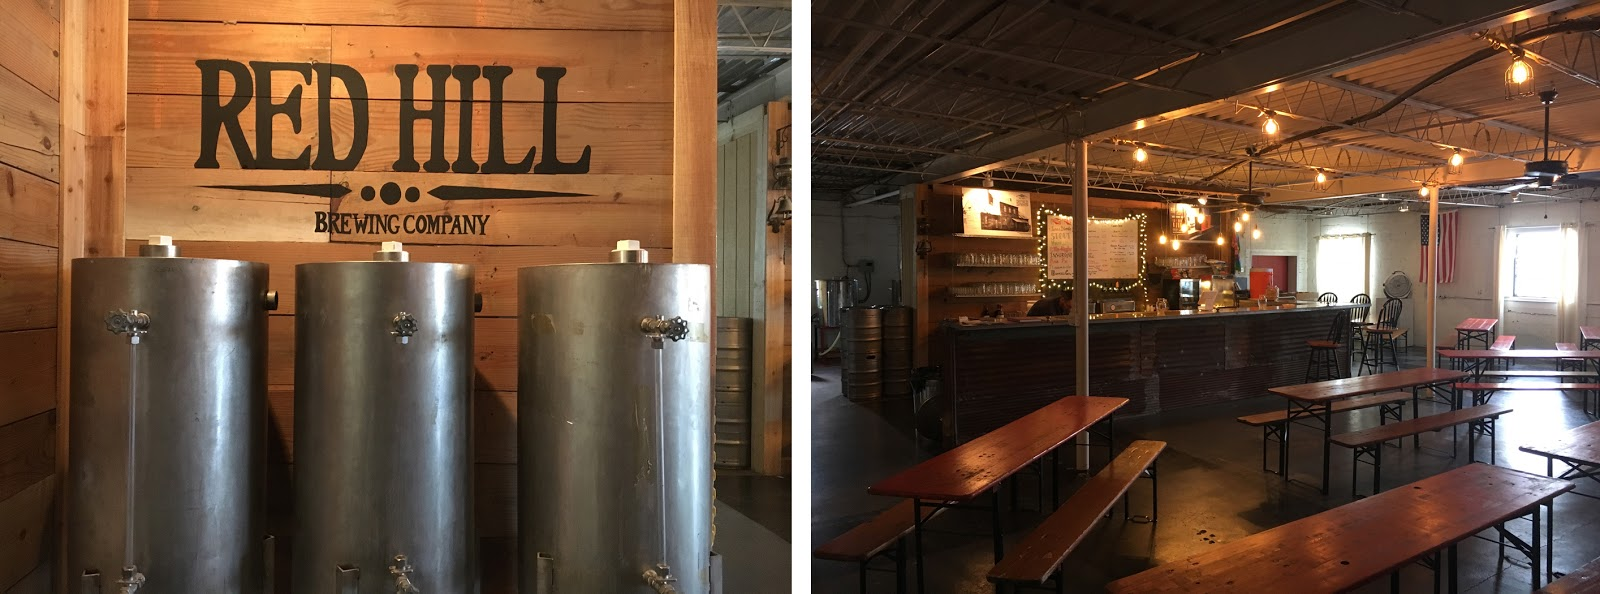 Red Hill Brewing Company Concord.jpg